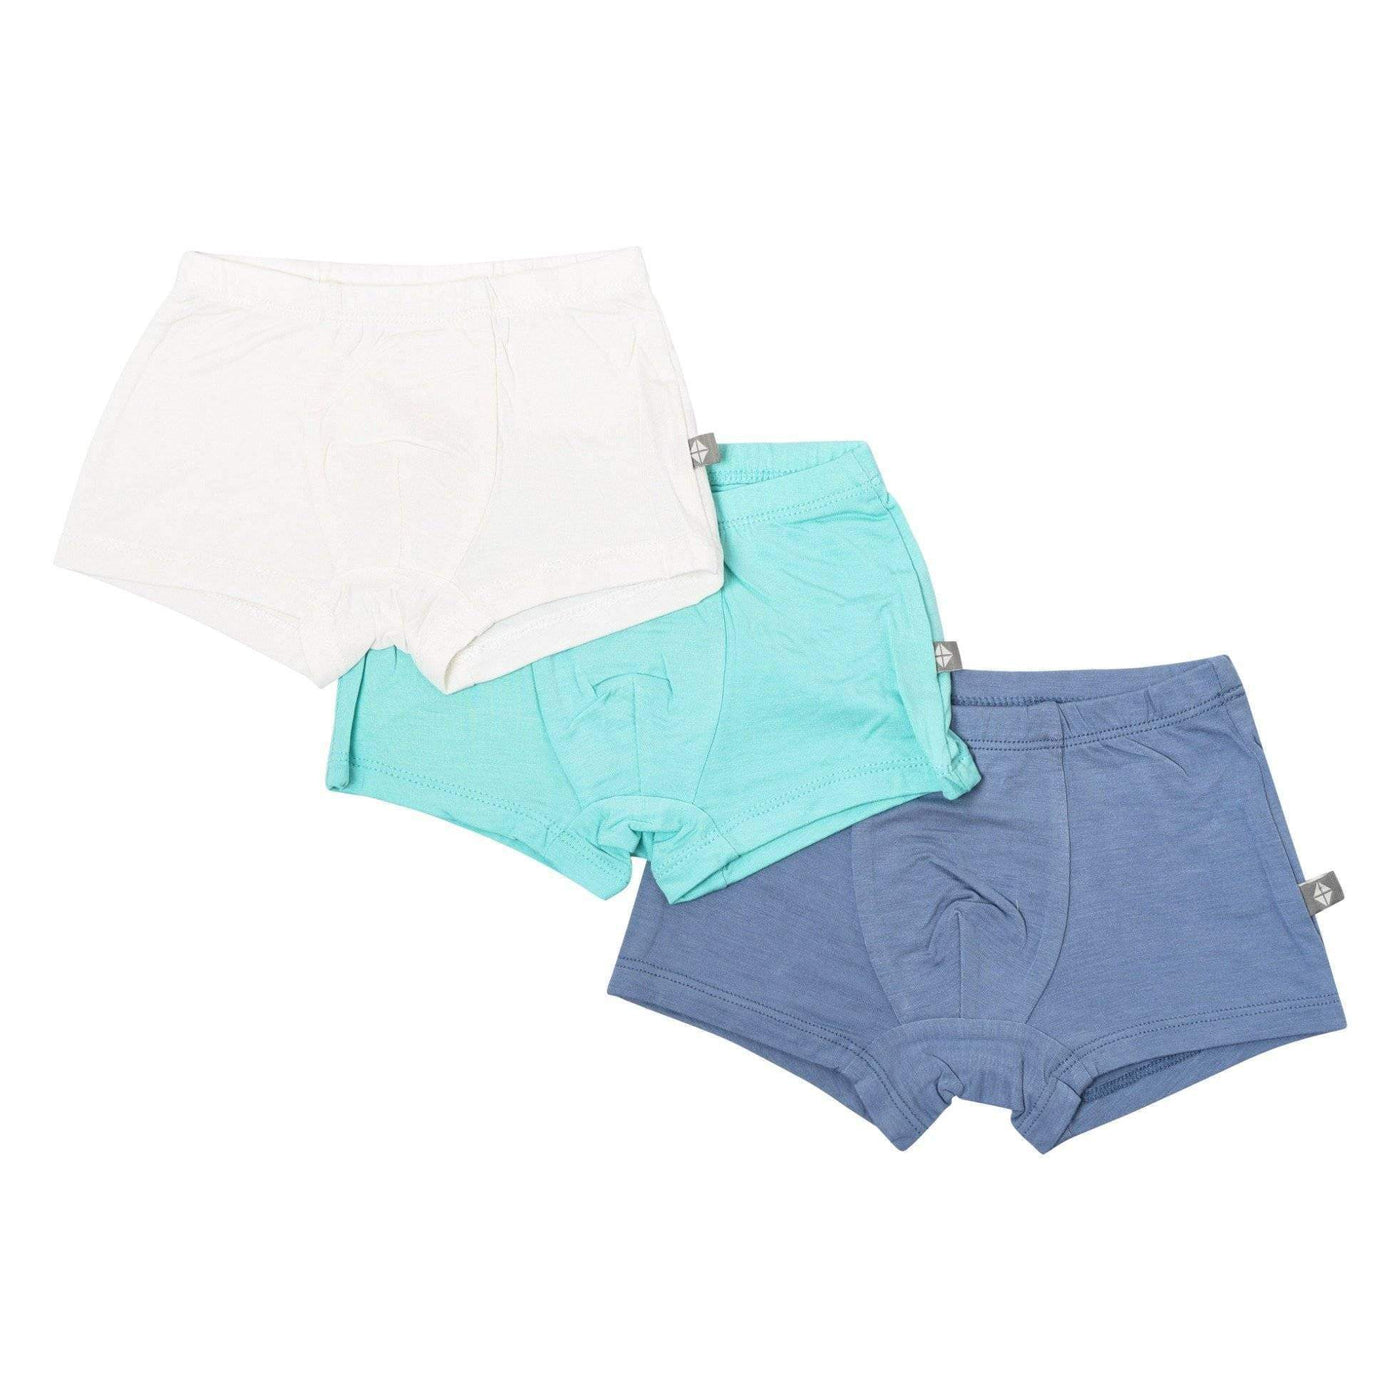 Kyte BABY Underwear 3-Pack Briefs in Cloud, Aqua, and Slate